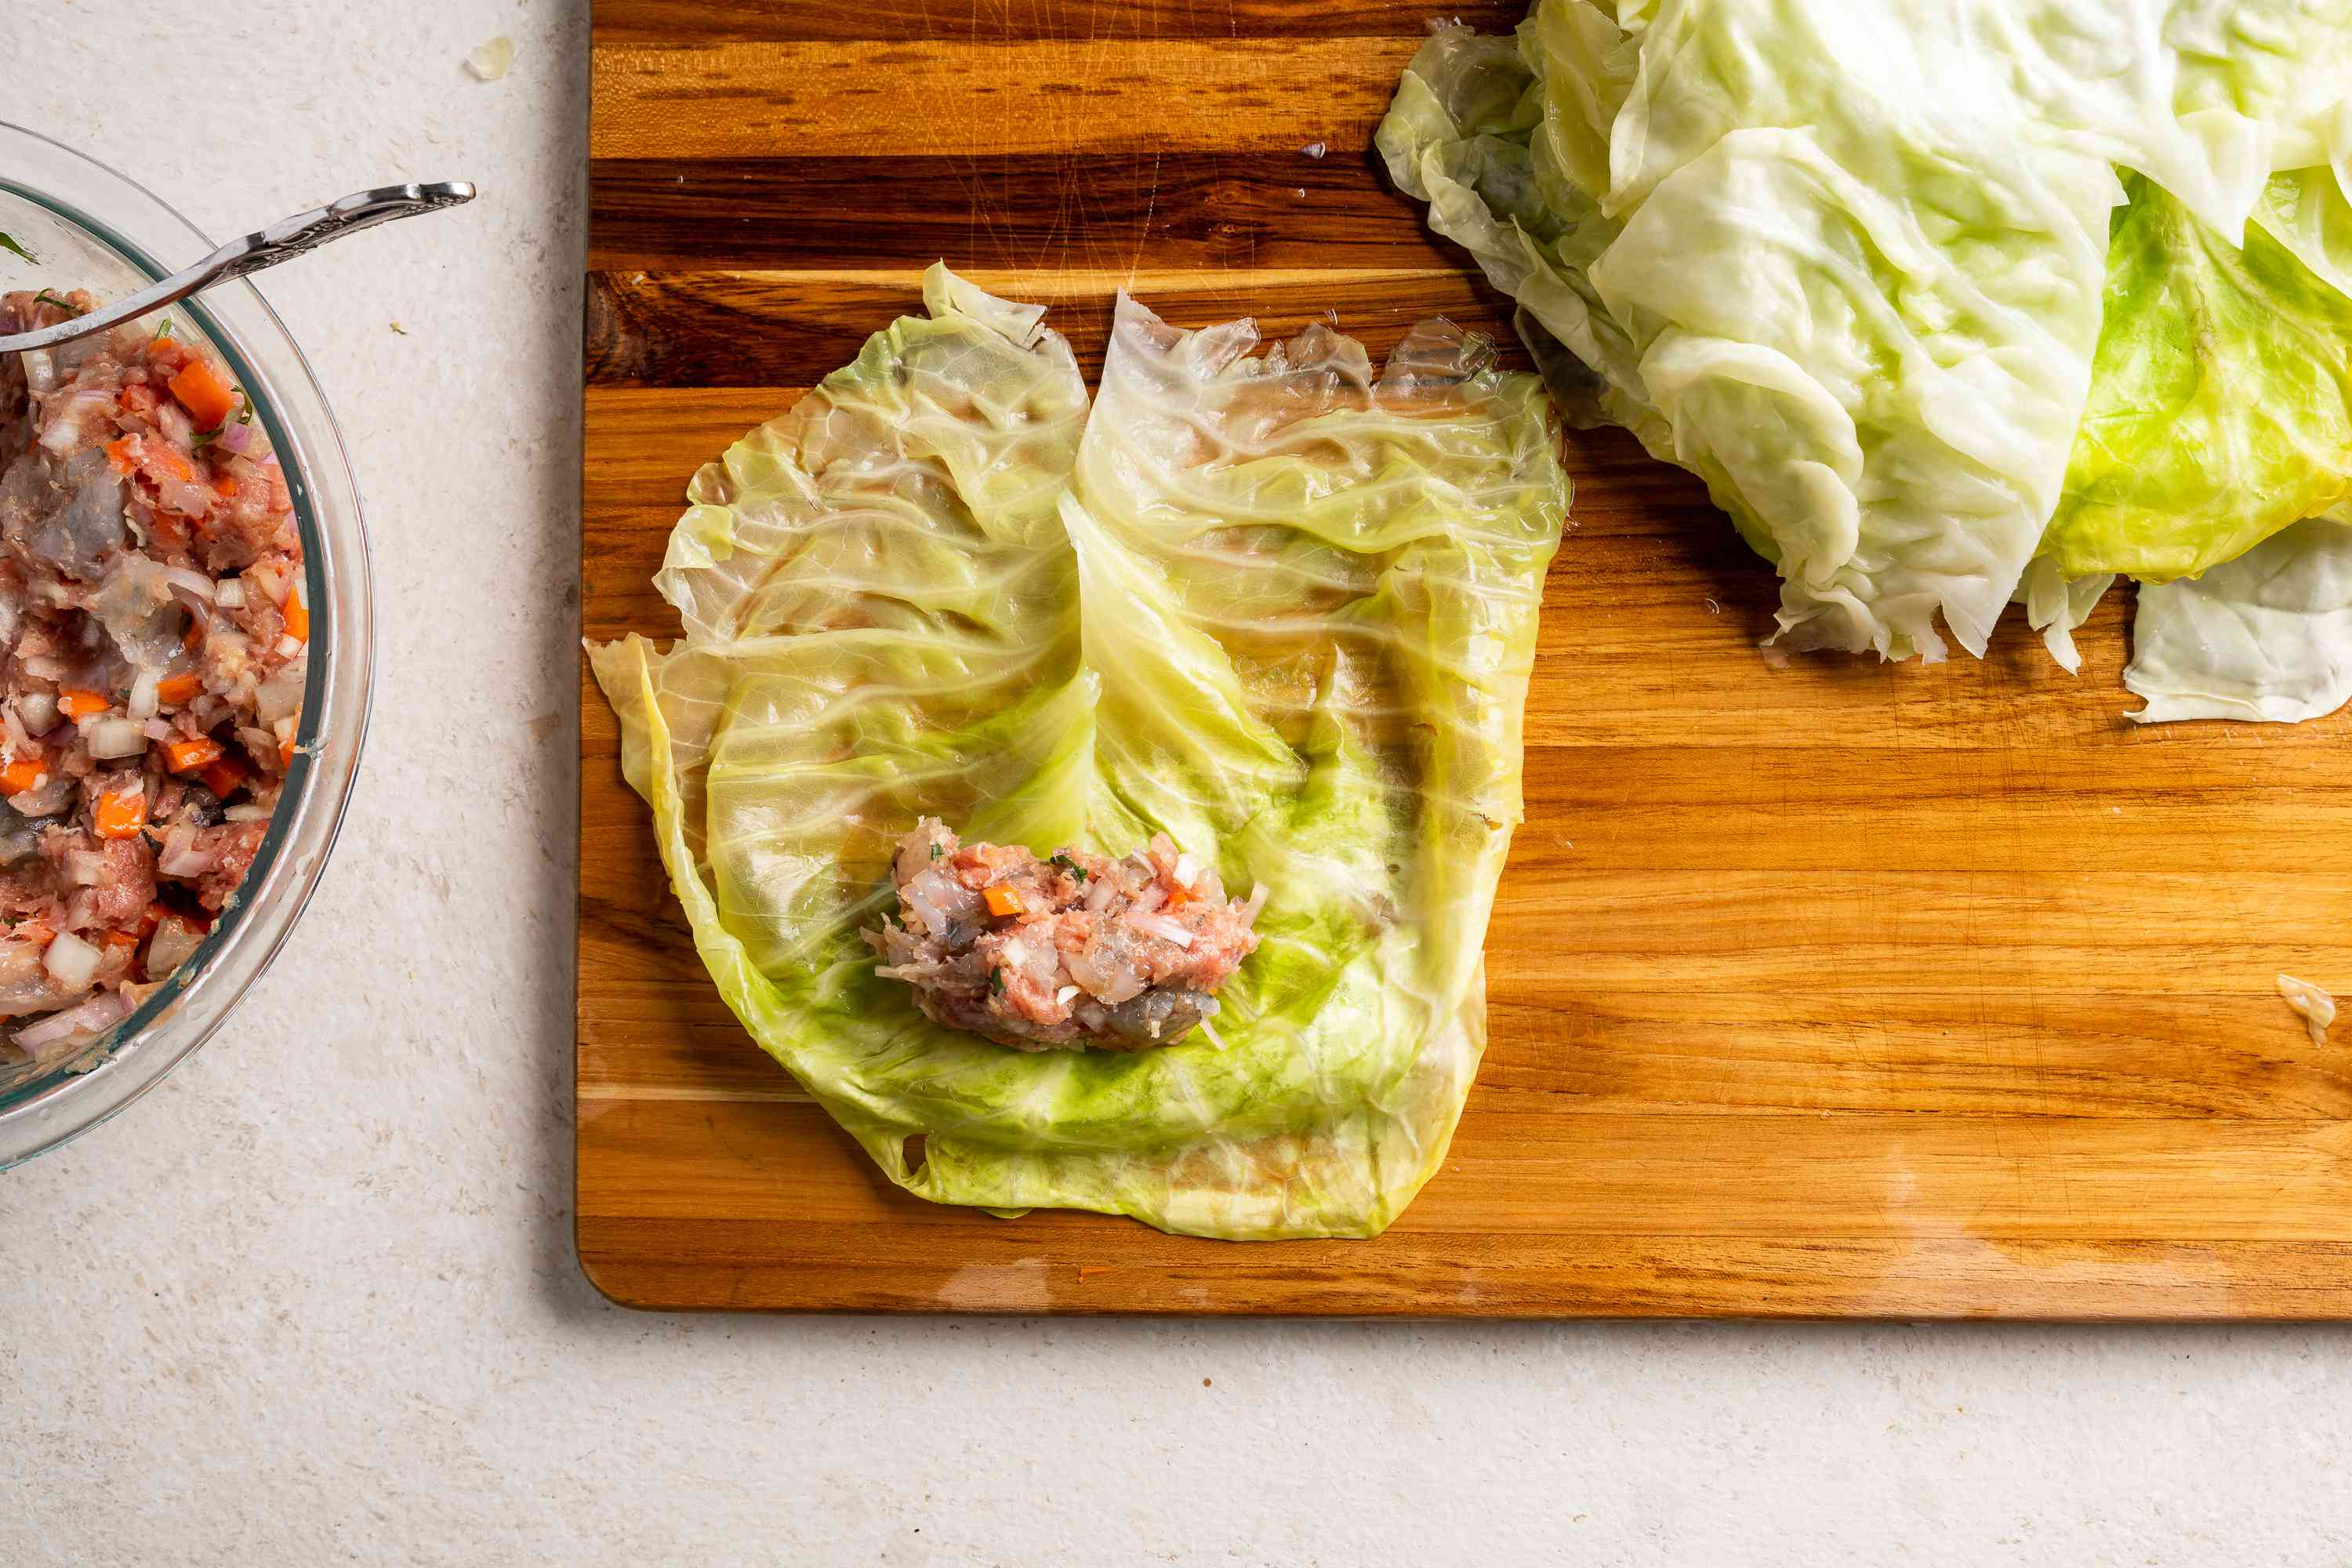 Lay a cabbage roll flat and place filling at the center of the cabbage leaf